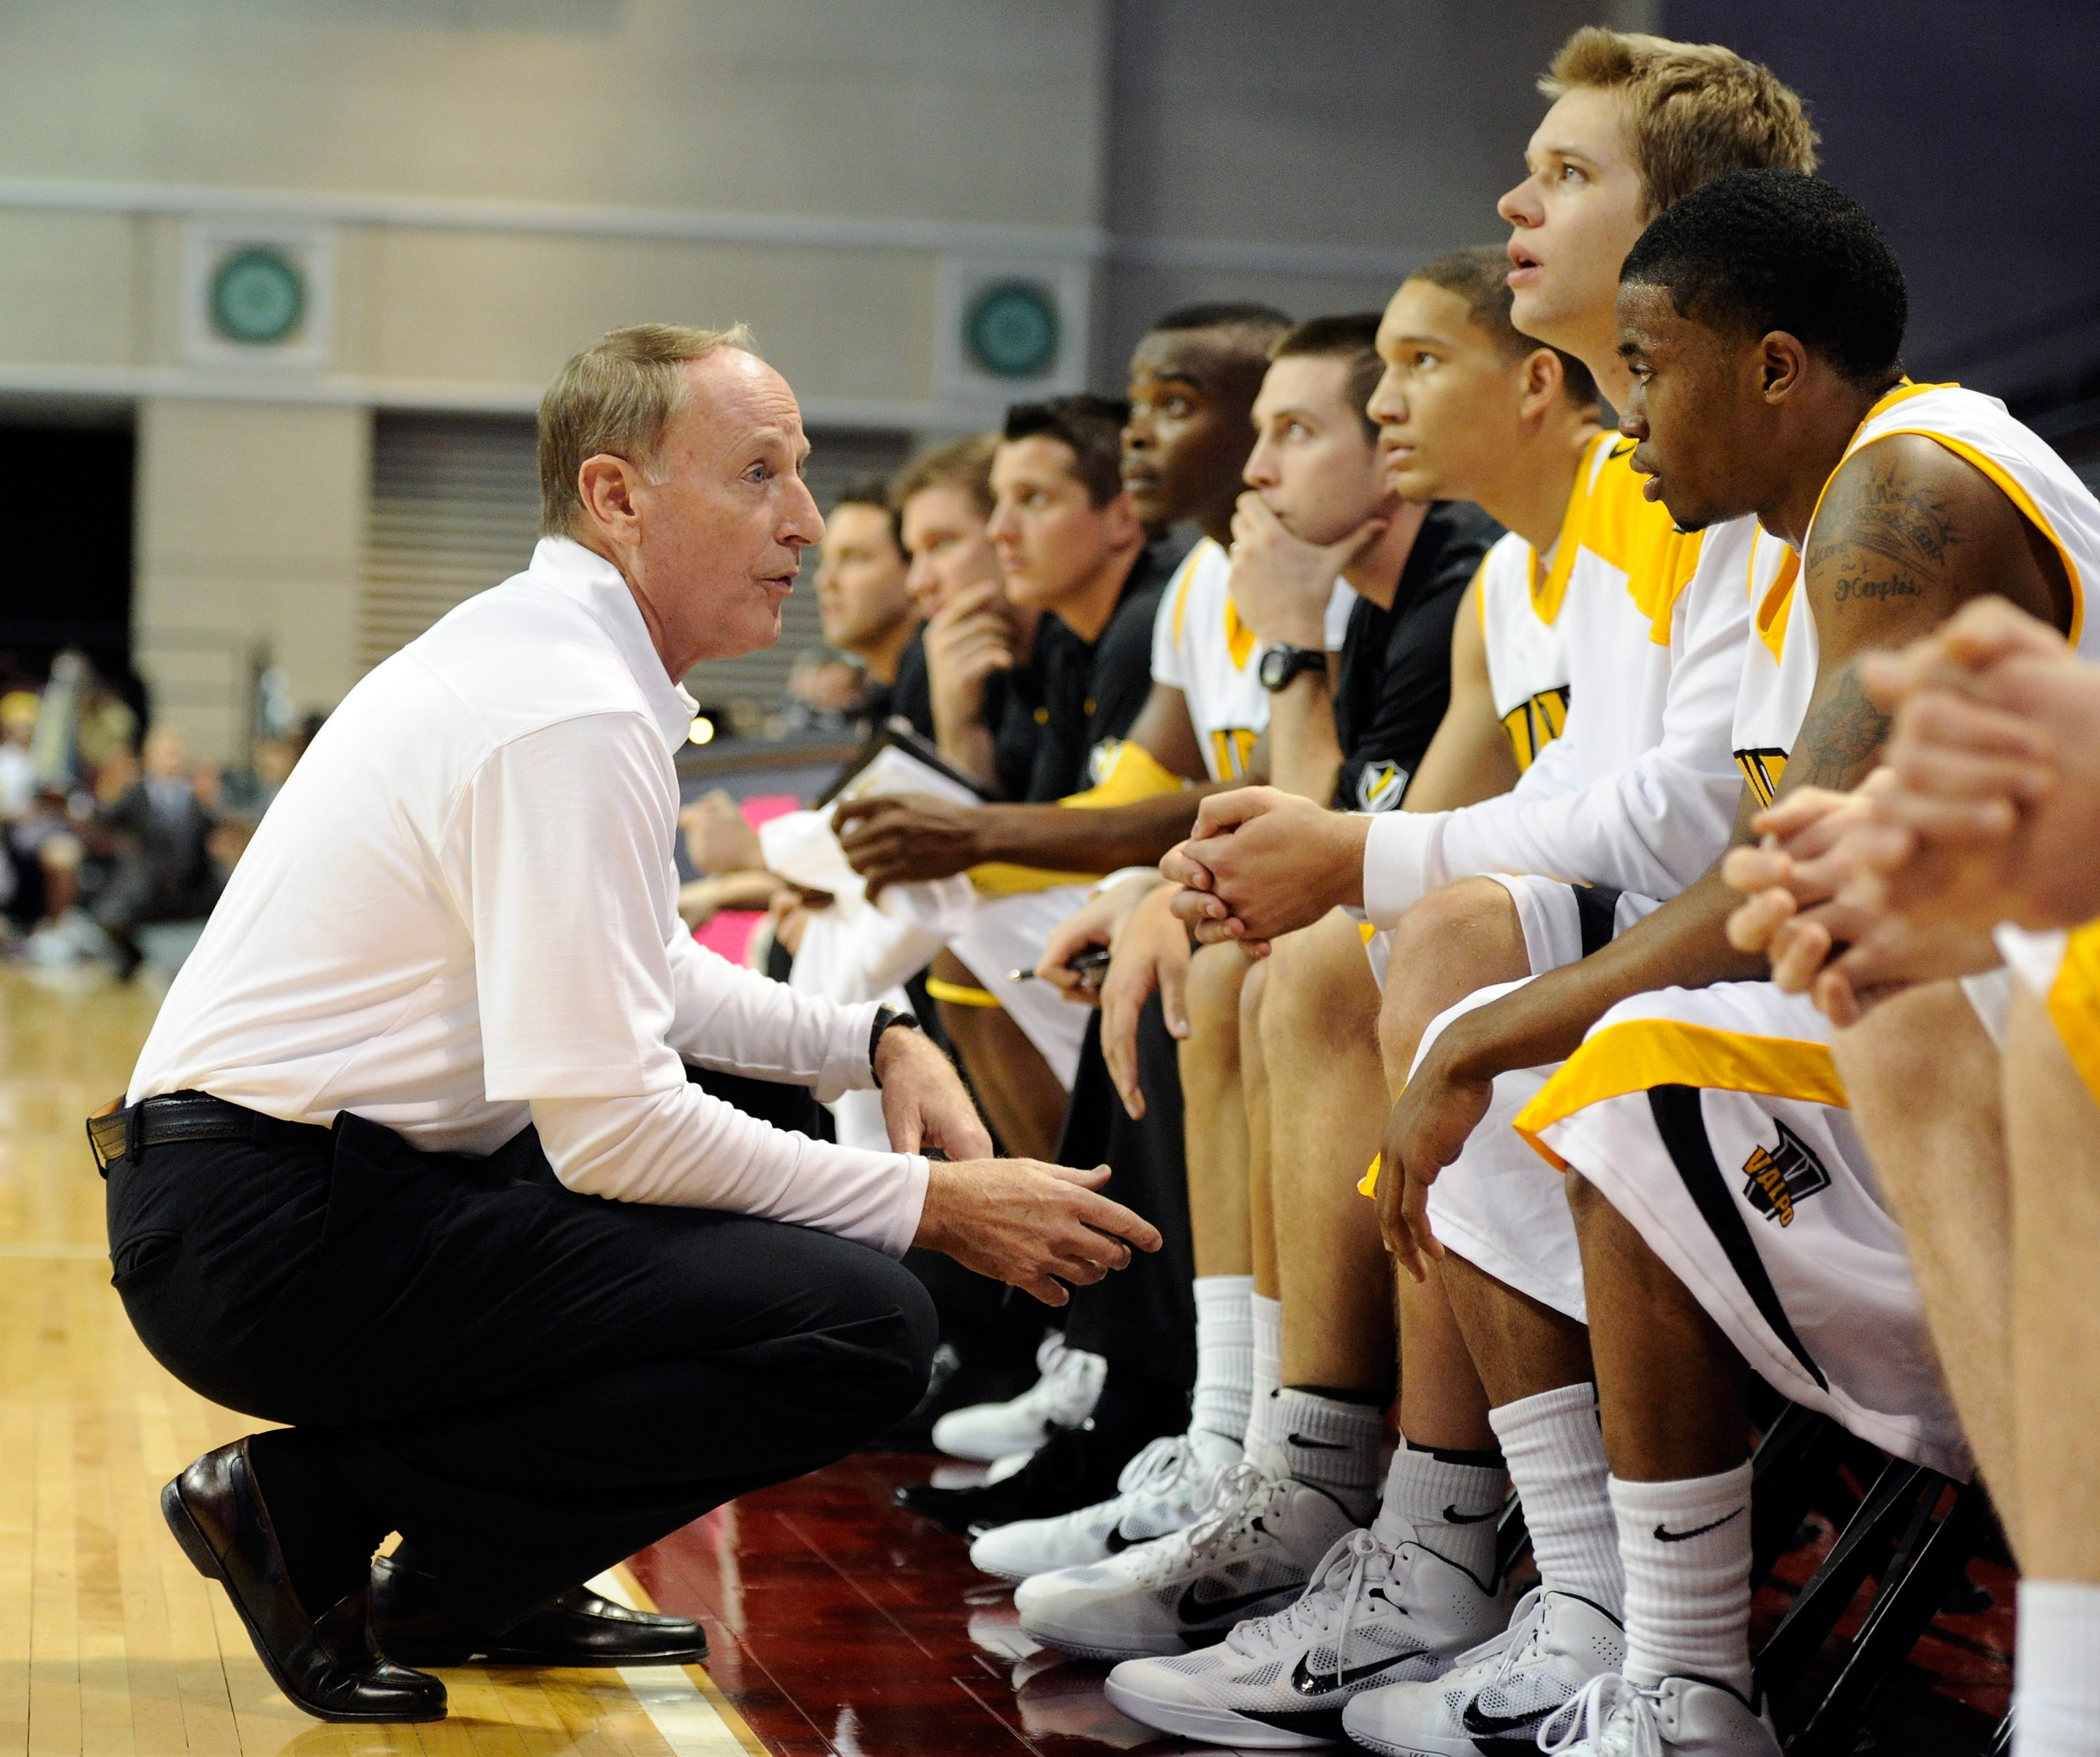 LAS VEGAS - NOVEMBER 26:  Head coach Homer Drew of the Valparaiso Crusaders talks to his players on the bench as they take on the Northern Colorado Bears during the third round of the Las Vegas Invitational at The Orleans Arena November 26, 2010 in Las Ve